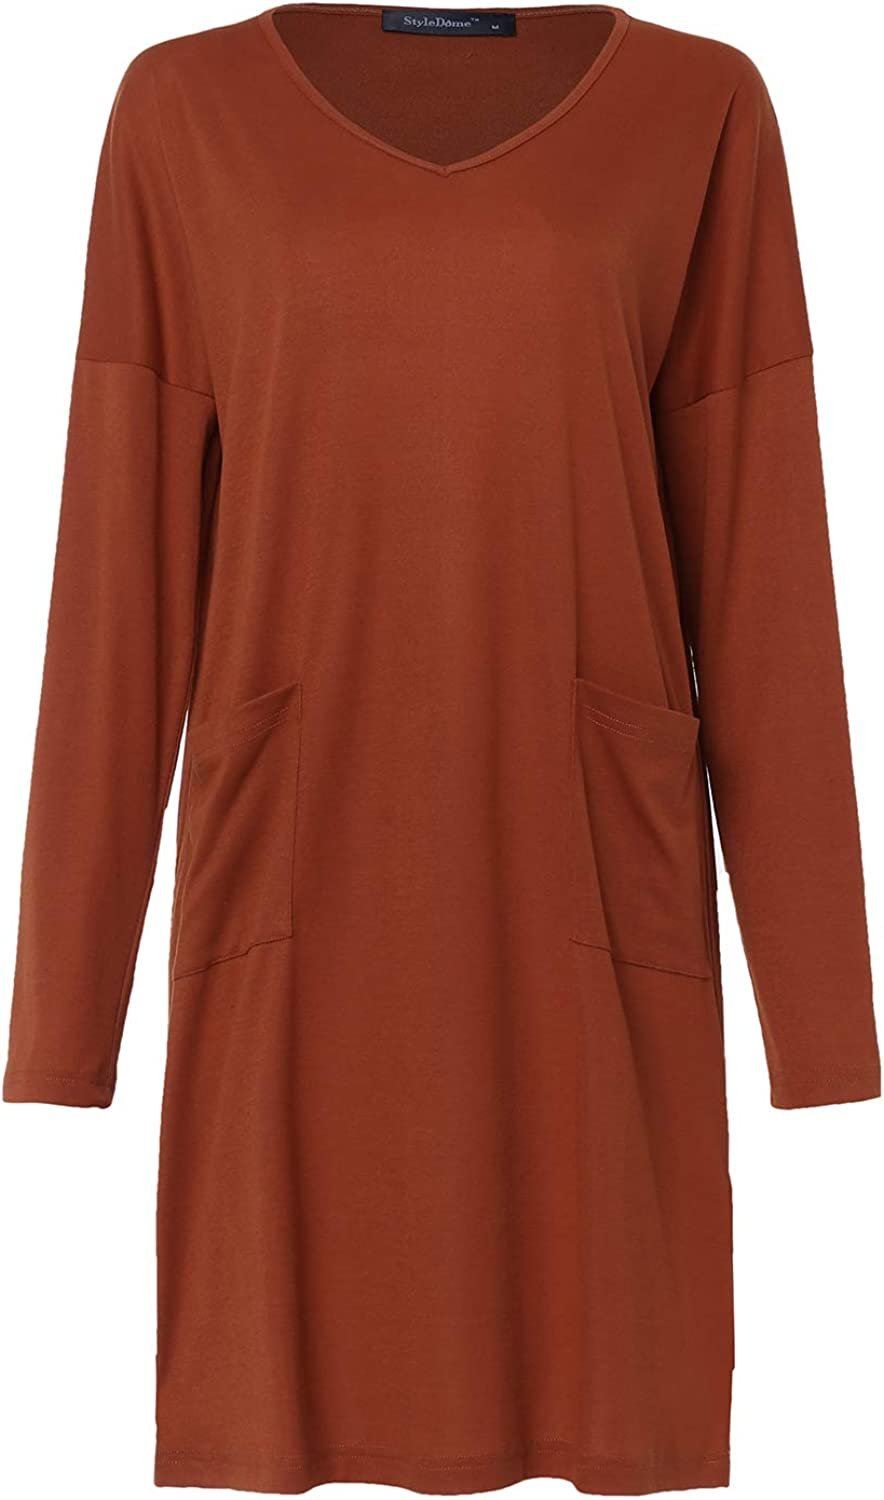 Style Dome Sweat-Shirt Robe /à Capuche Femme Manches Longues Casual Pull Tops Robe Automne Hiver T-Shirt Hauts